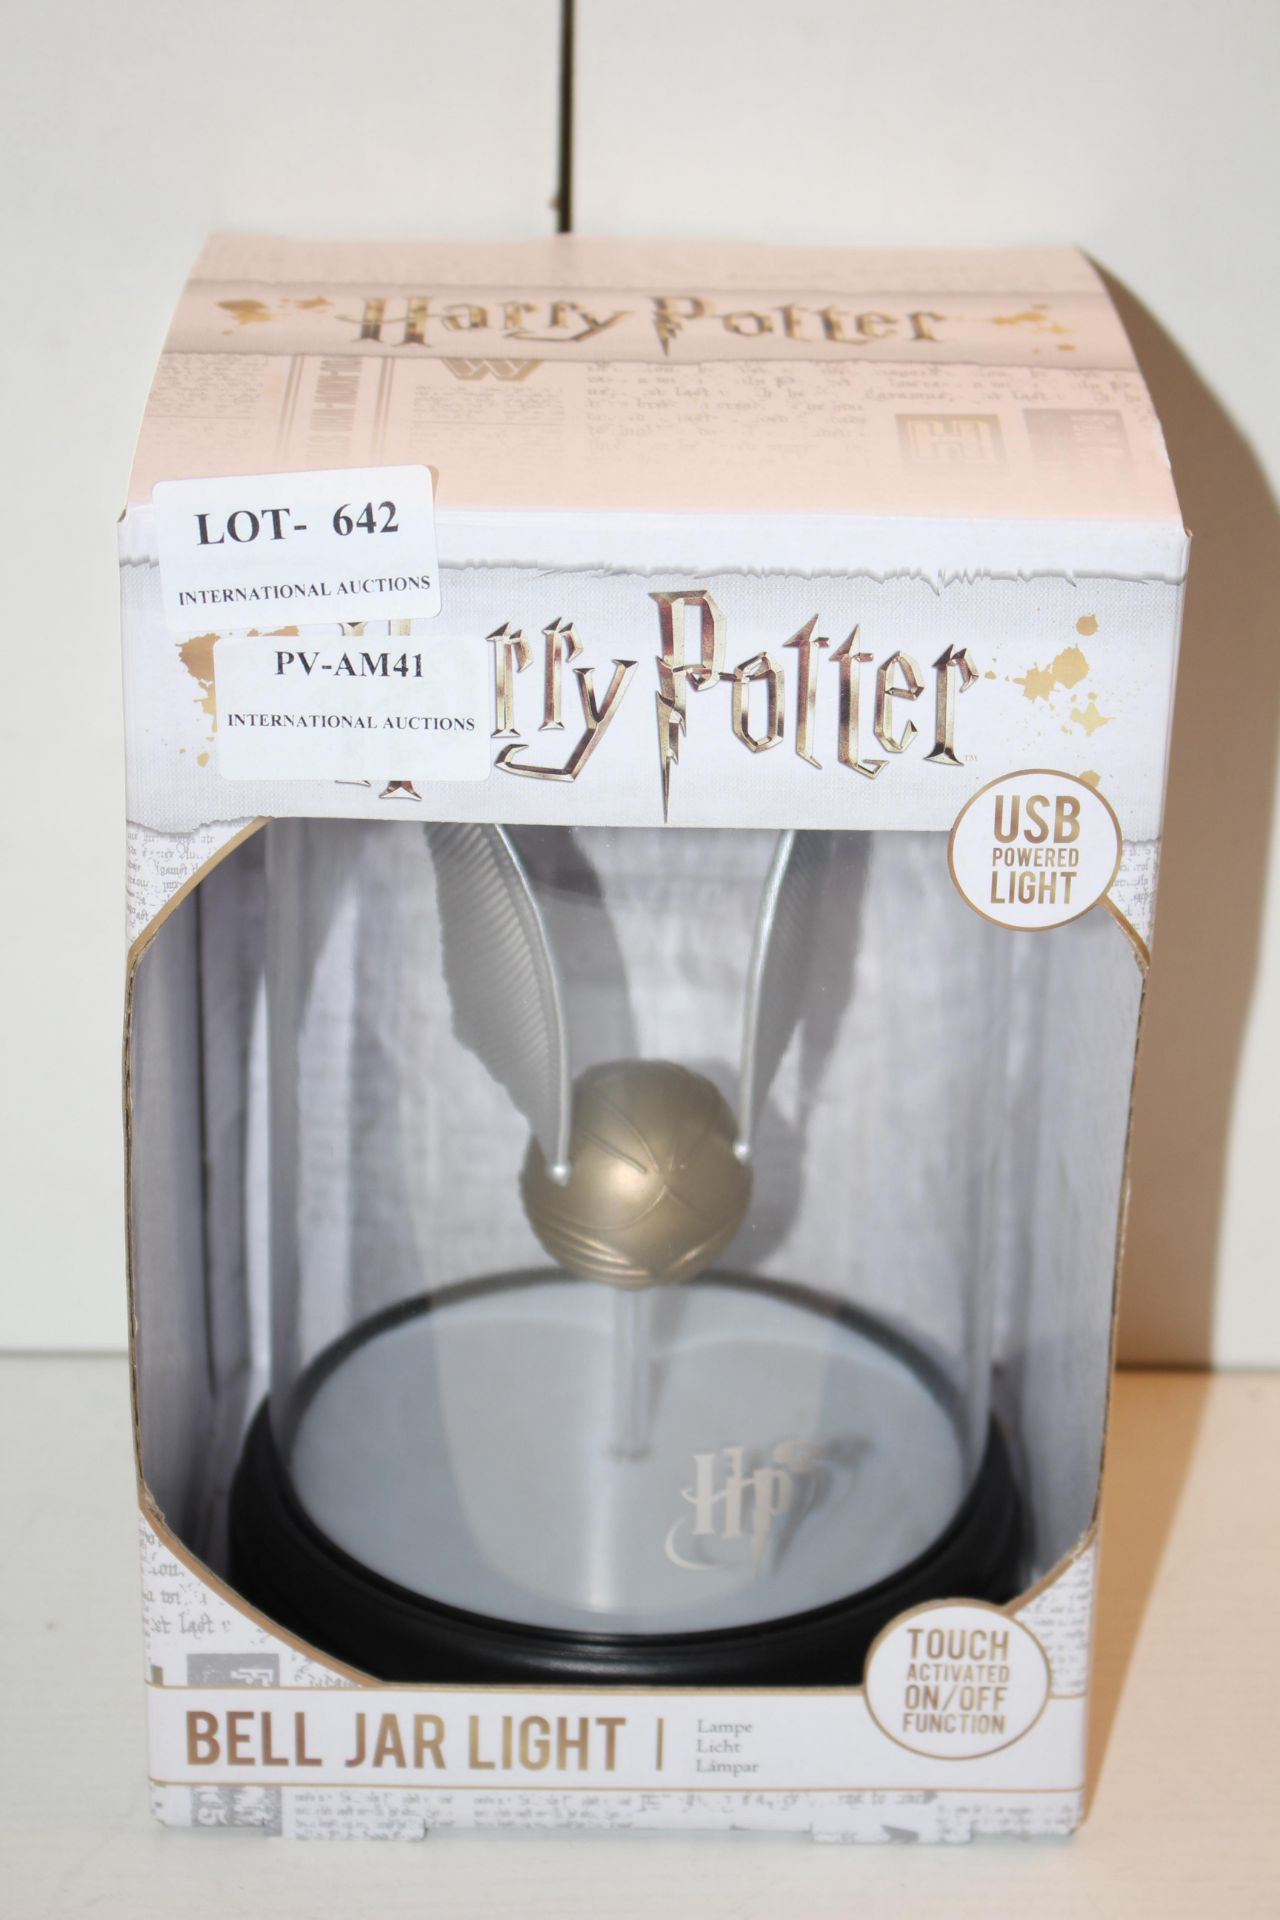 BOXED HARRY POTTER BELL JAR LIGHTCondition ReportAppraisal Available on Request- All Items are